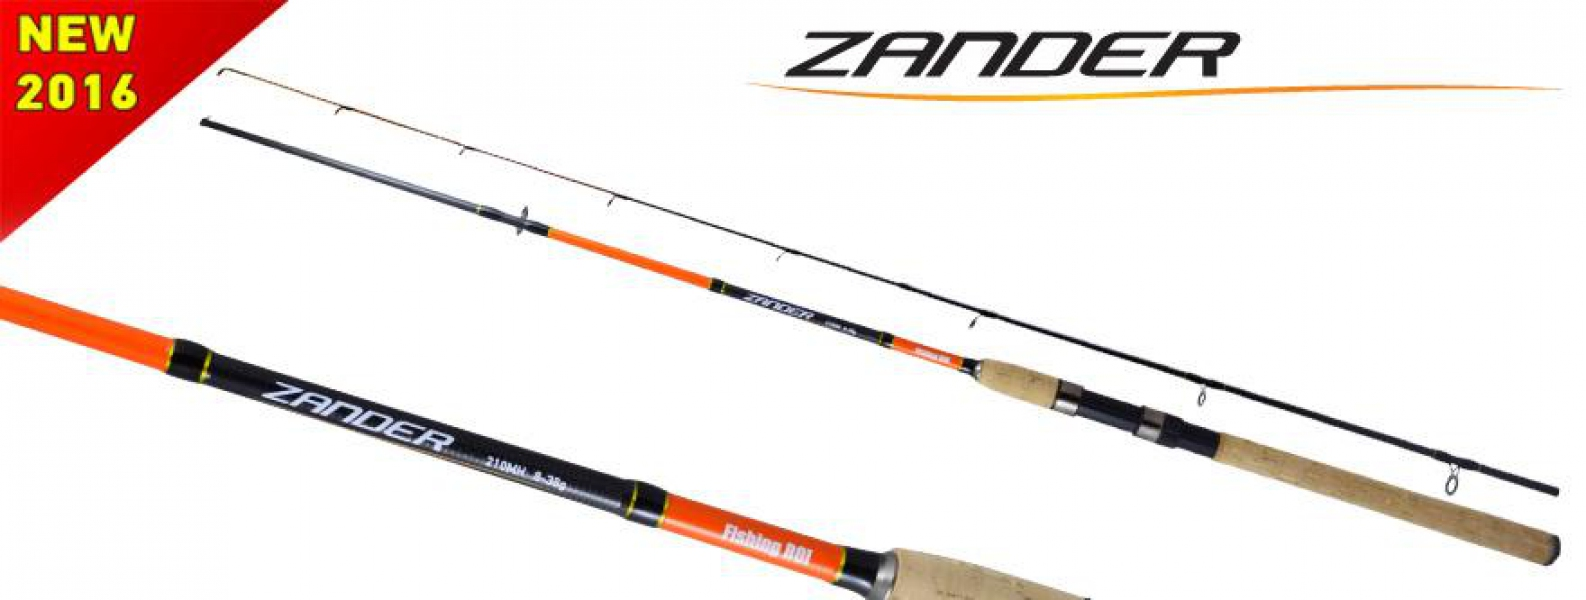 Спиннинг Fishing ROI Zander 8-38g 2.70m